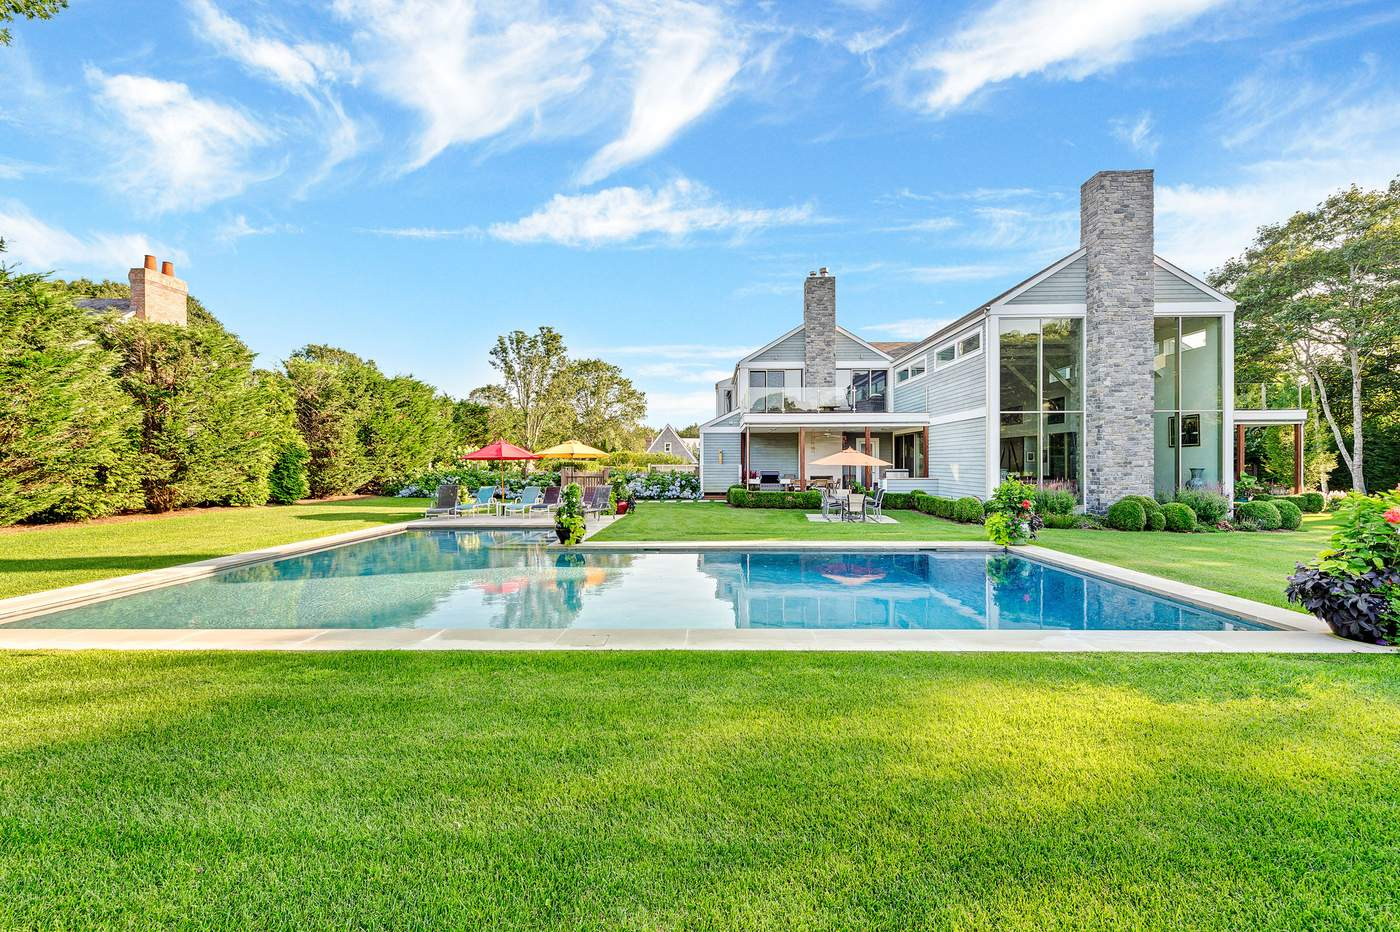 East Hampton, address available upon request$6.495 millionThis sprawling 6,500-square-foot home will capture the imagination of any chef with the custom kitchen kitted out with Calacatta stone, a Bertazzoni range and a Liebherr refrigerator. There is also a lower-level wine cellar and tasting room and outdoor summer kitchen. Inside, there are six bedrooms, a massive great room, den, gym, and theater room. Step outdoors to enjoy the covered porch and heated salt water pool set on a wide manicured lawn. Pick up locally grown produce, artisanal cheeses, just-baked pies and muffins, preserved vegetables and fresh fish at The Round Swamp Family Farm, open spring through early fall.